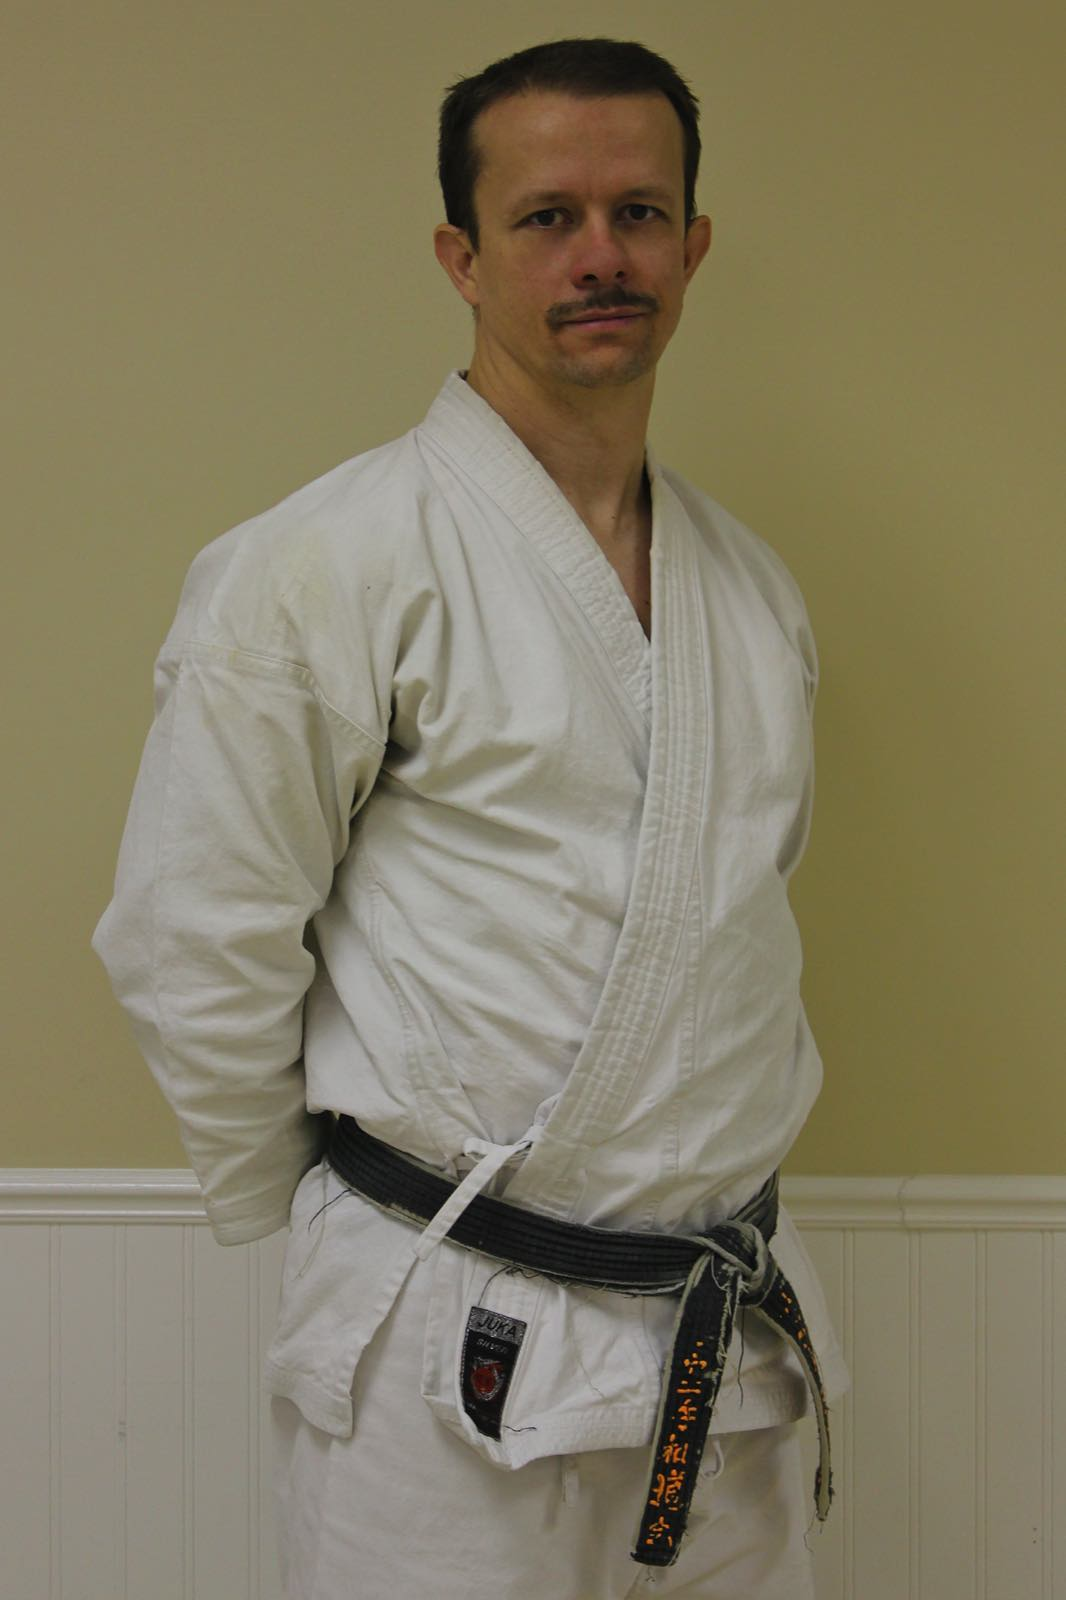 Sensei James Freeman